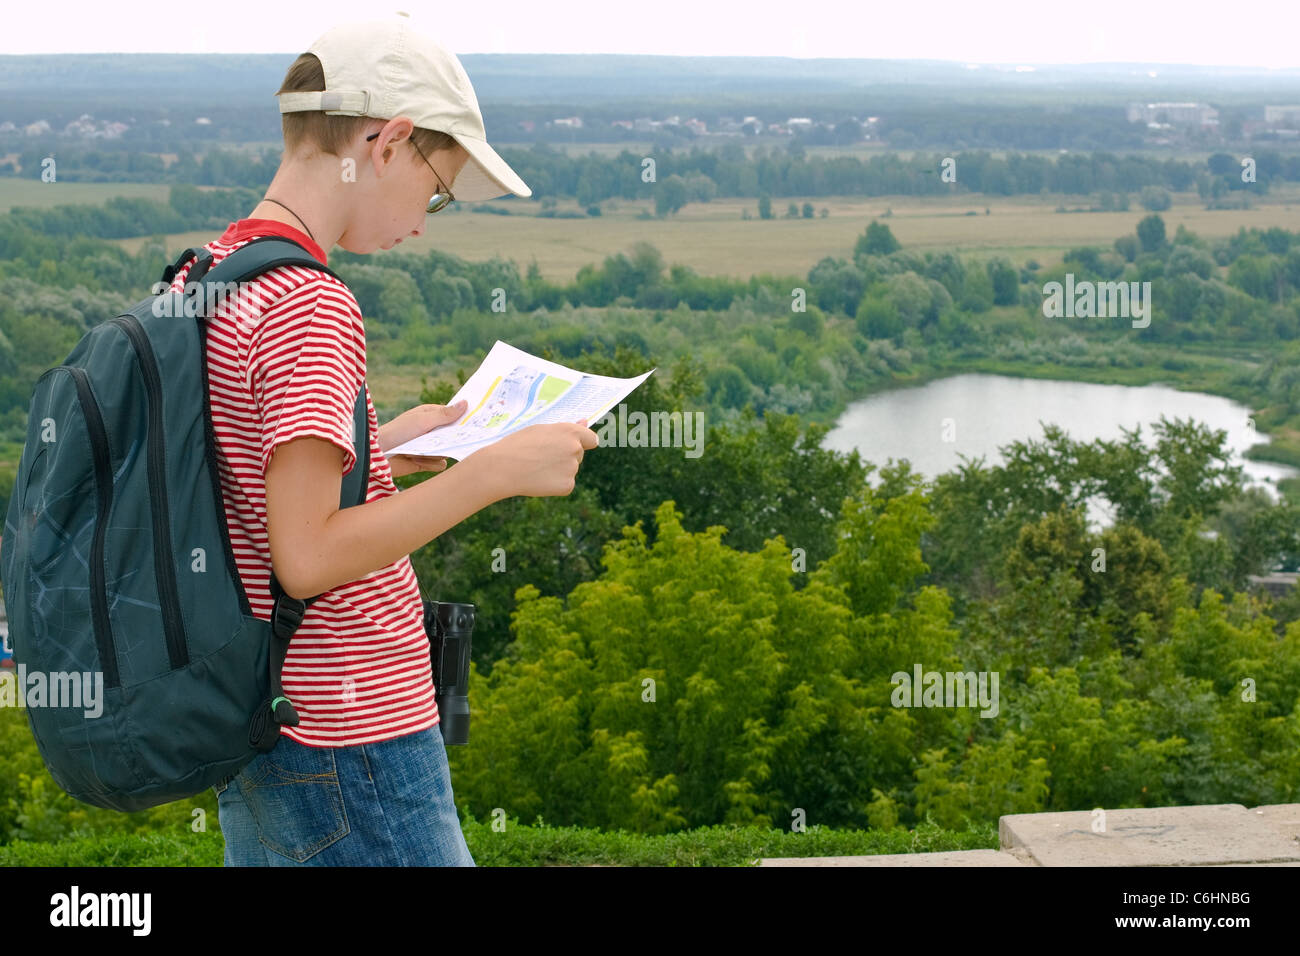 Boy with binoculars and backpack looks at the map on a hike - Stock Image